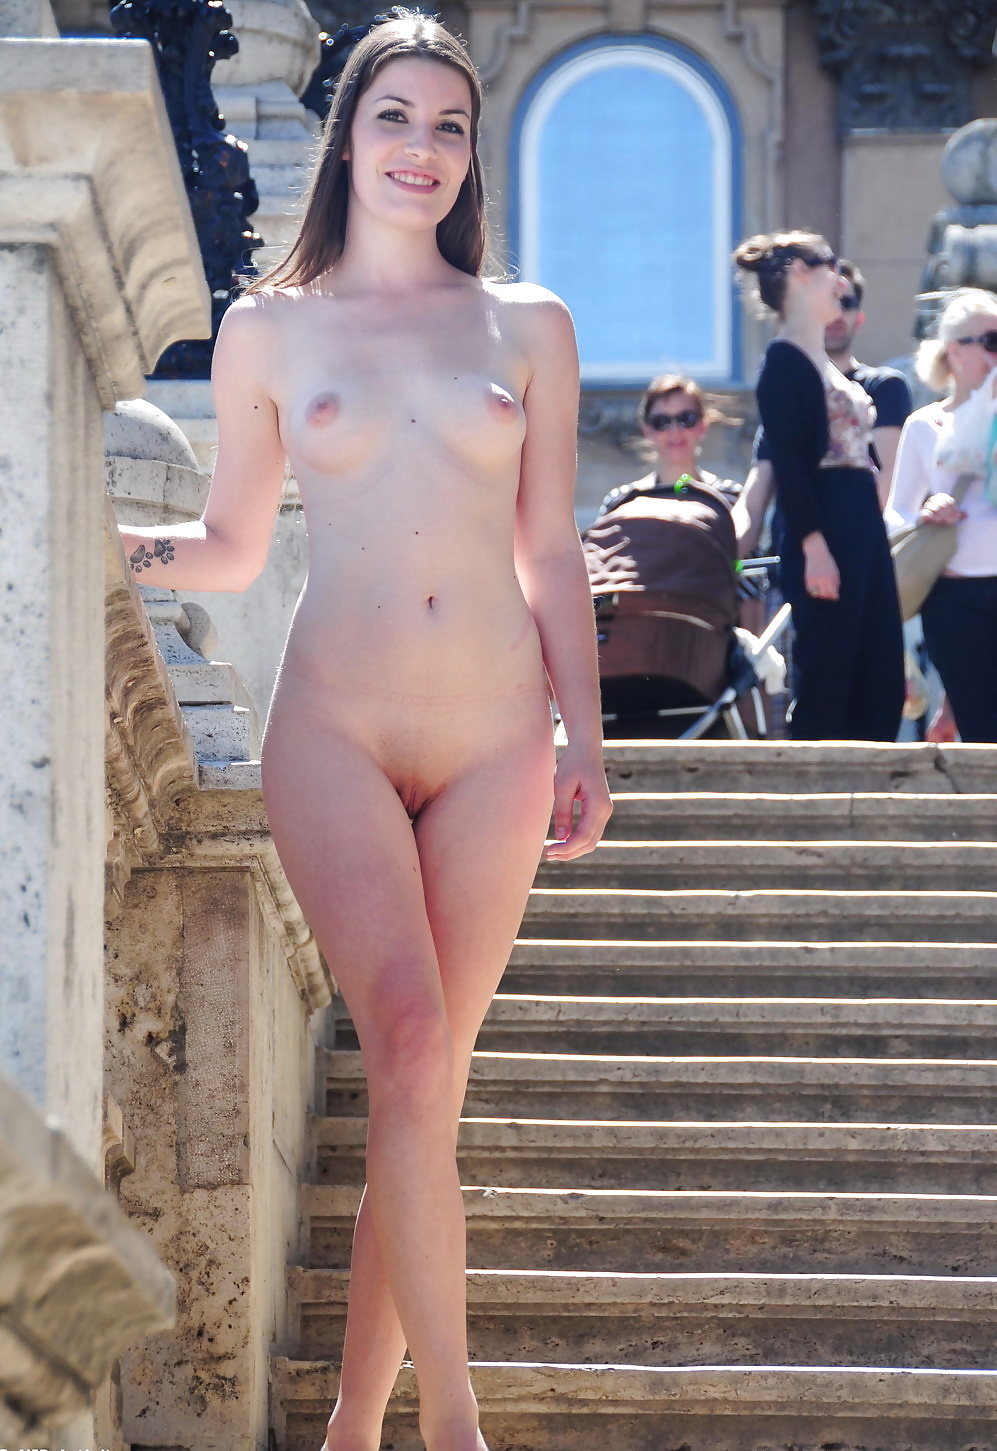 Naked Women Embarrassed In Public - Image 4 Fap-7120